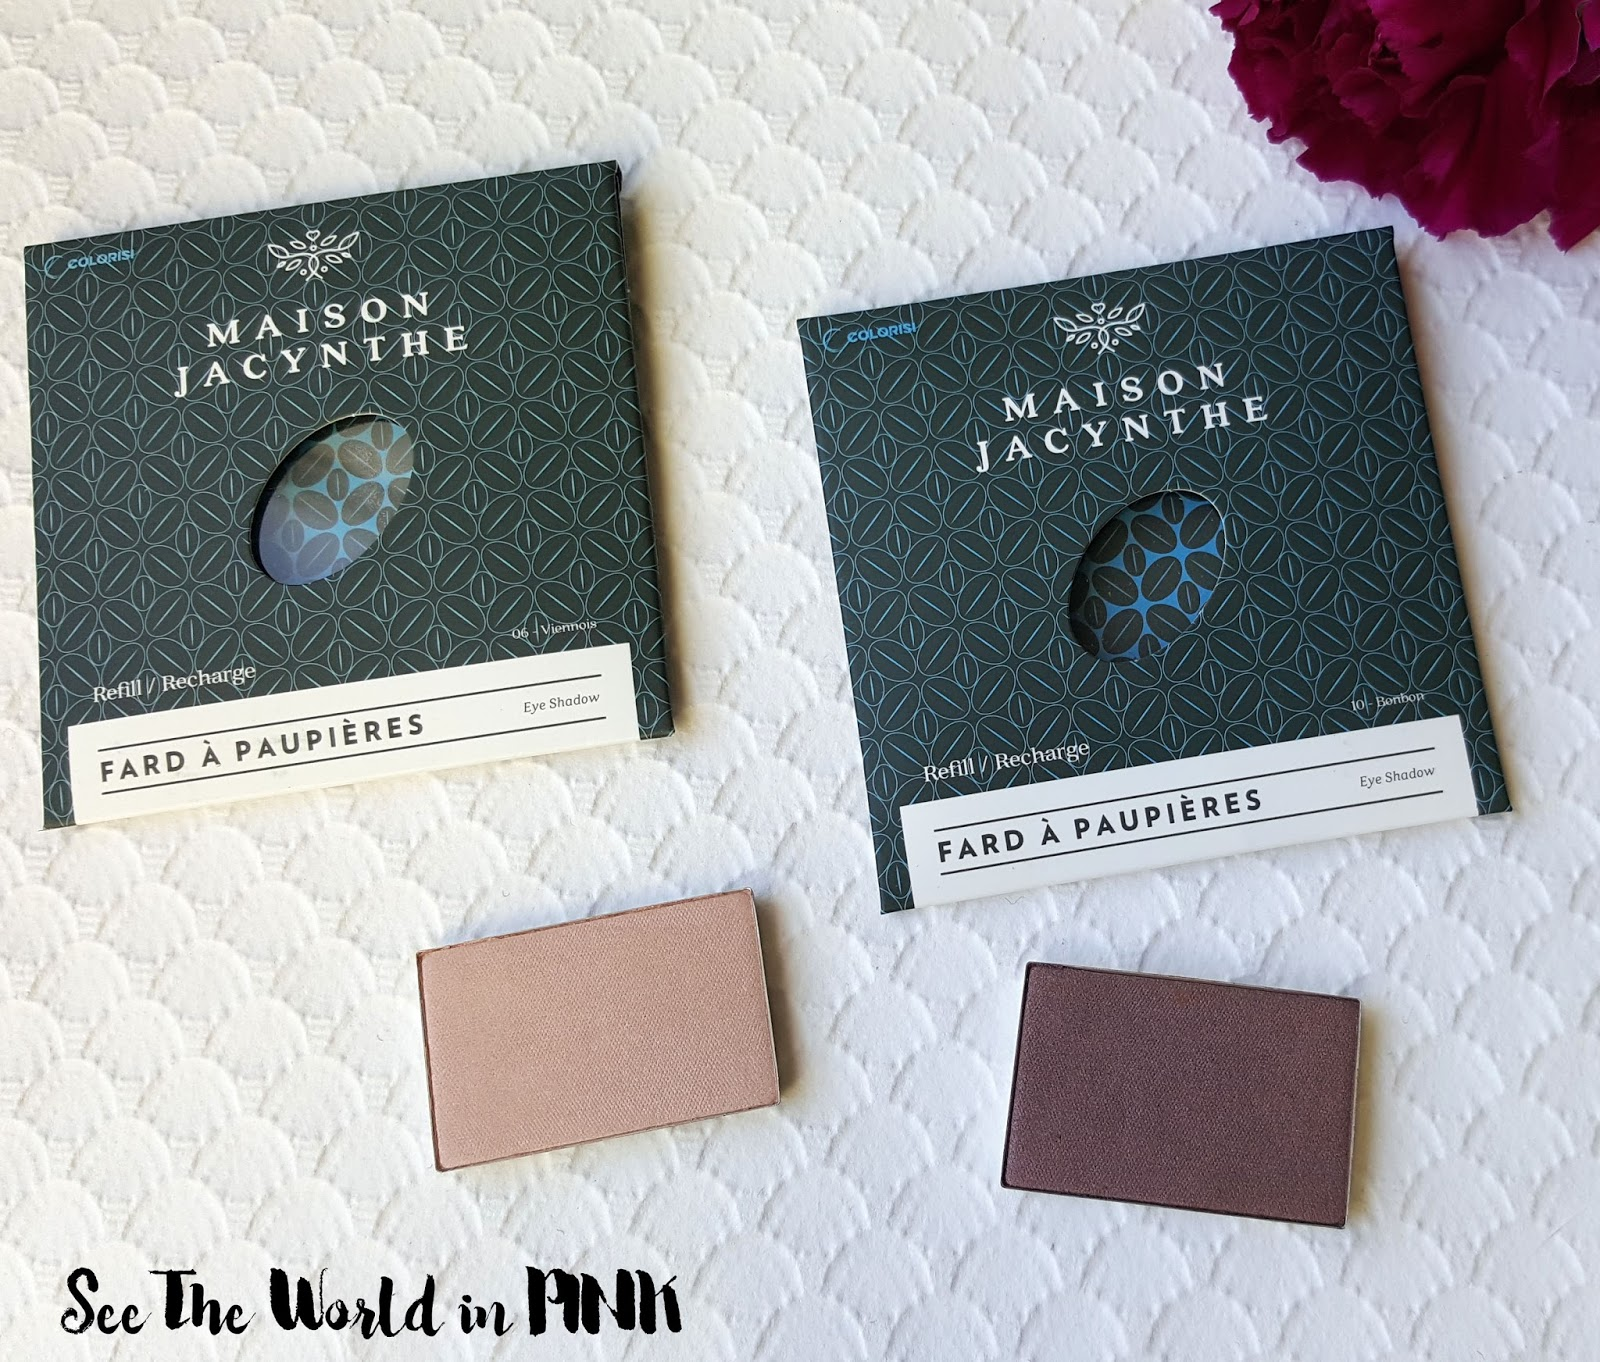 Maison Jacynthe Makeup - Eyeshadow and Mascara Reviews and Swatches